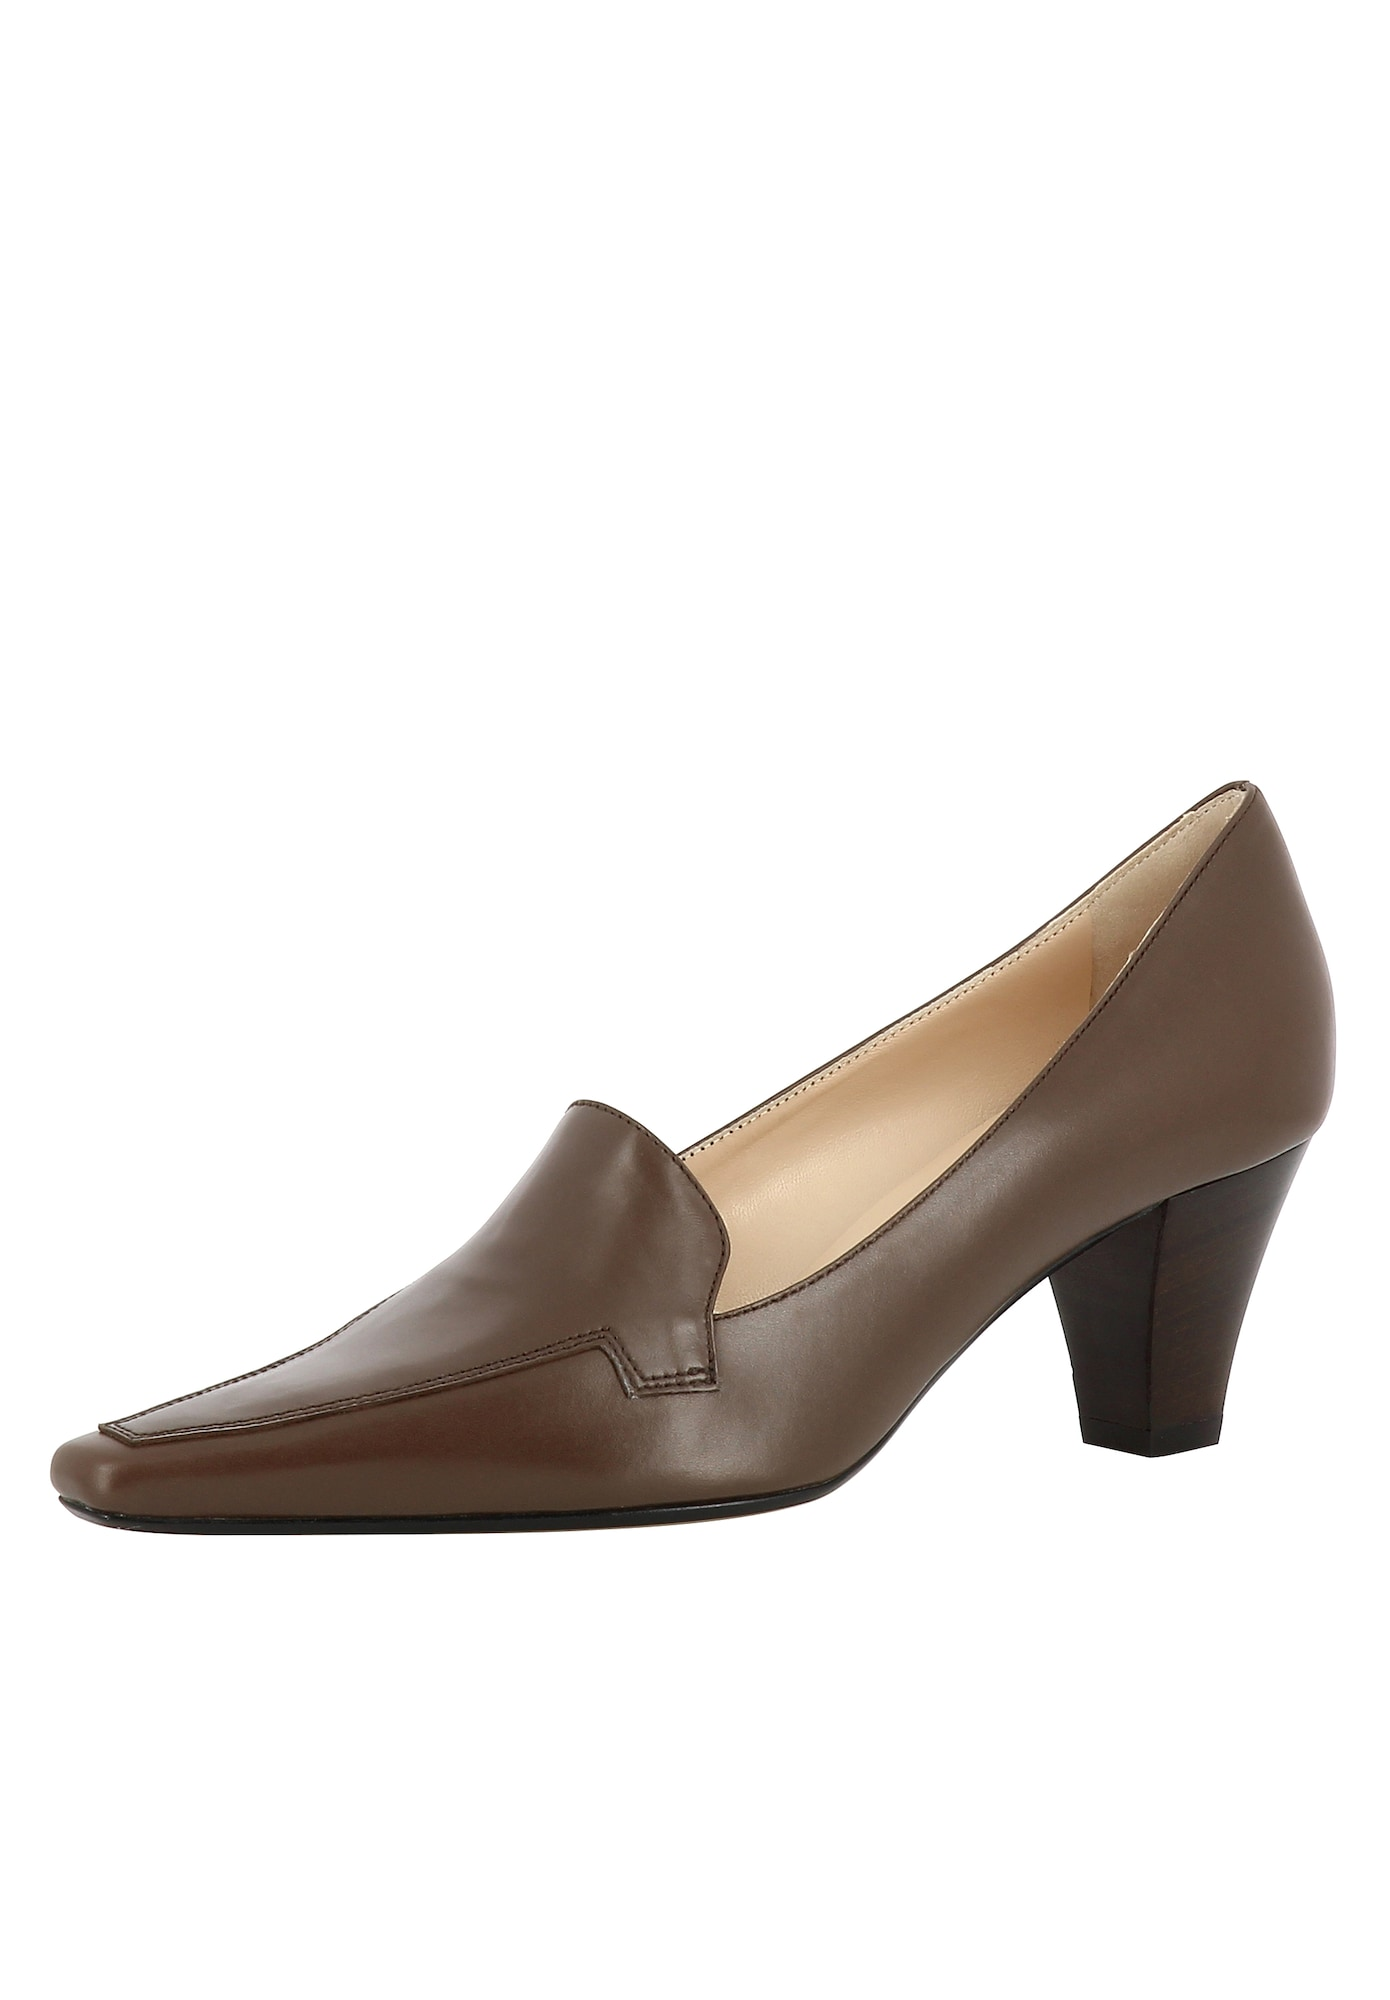 Damen Pumps PATRIZIA | Schuhe > Pumps | EVITA